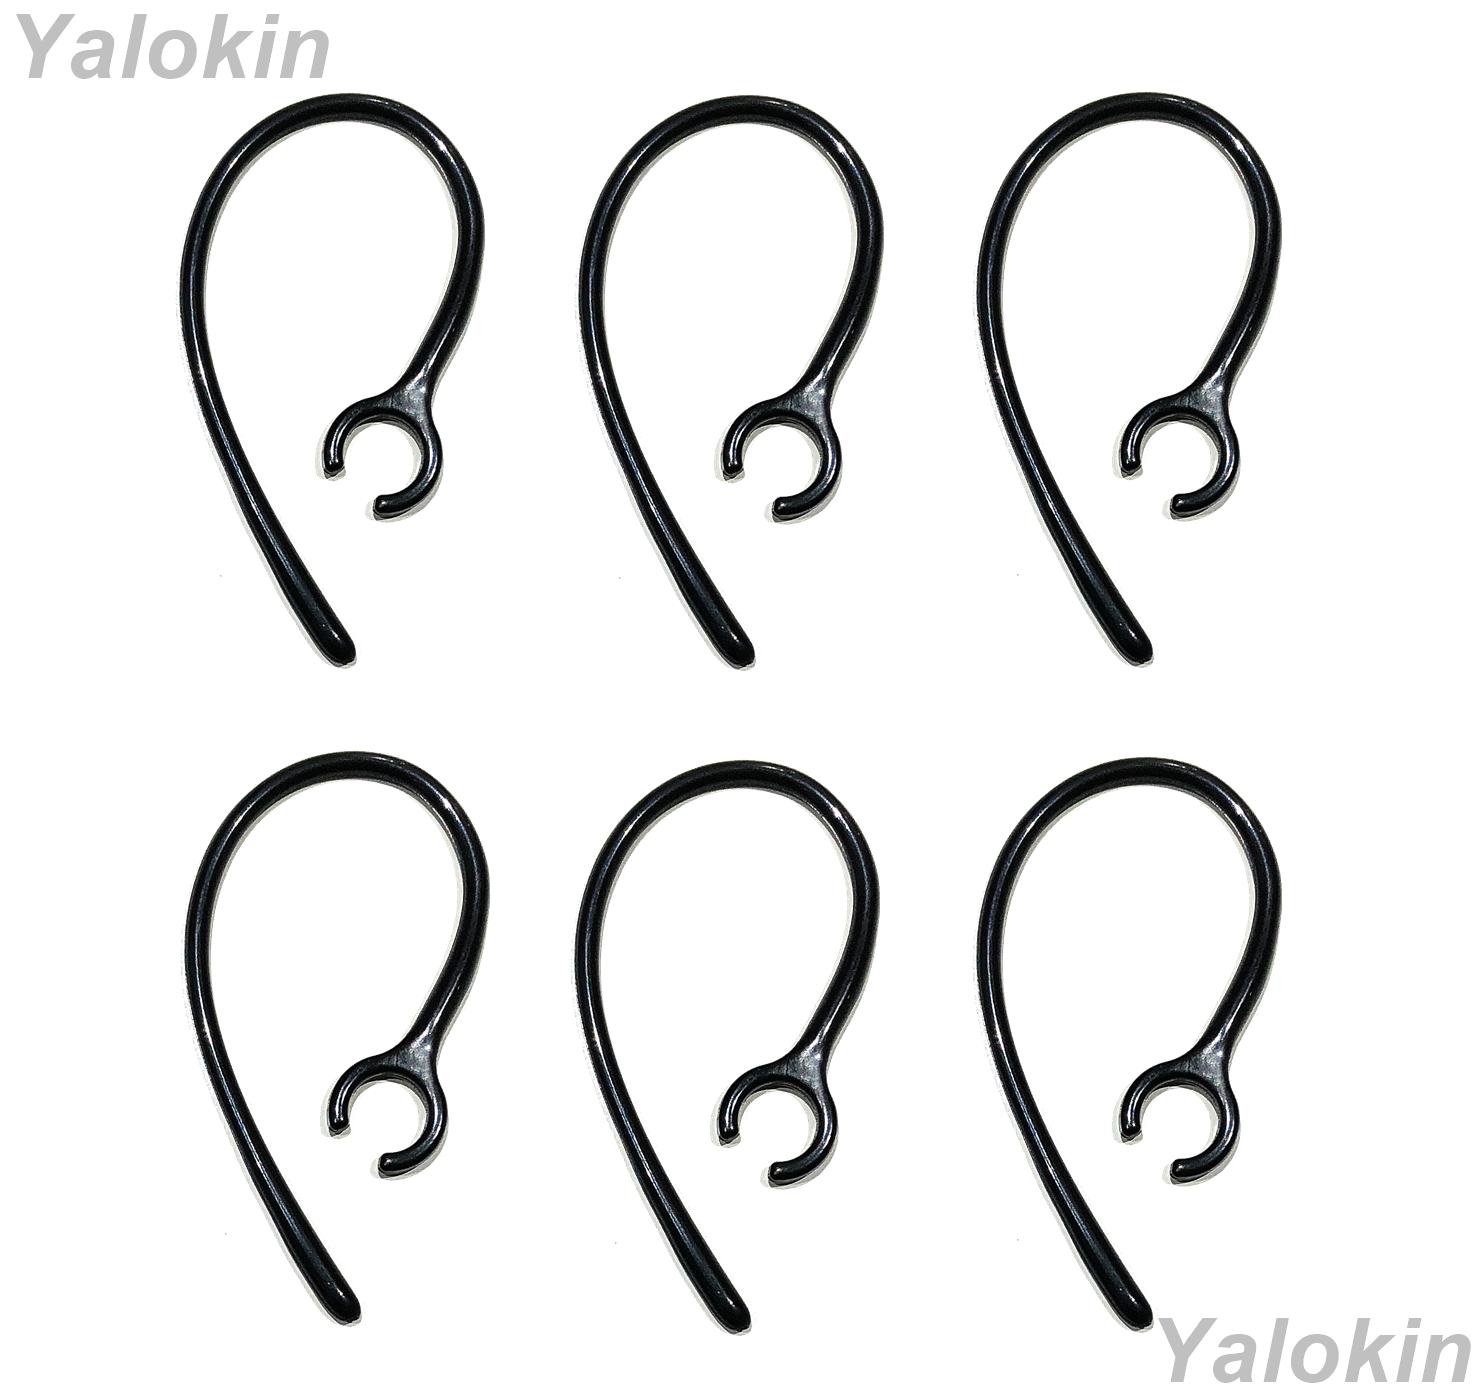 6pcs (SK-CHP) Black Replacement Ear Loops Ear-Clips for Jabra Headset